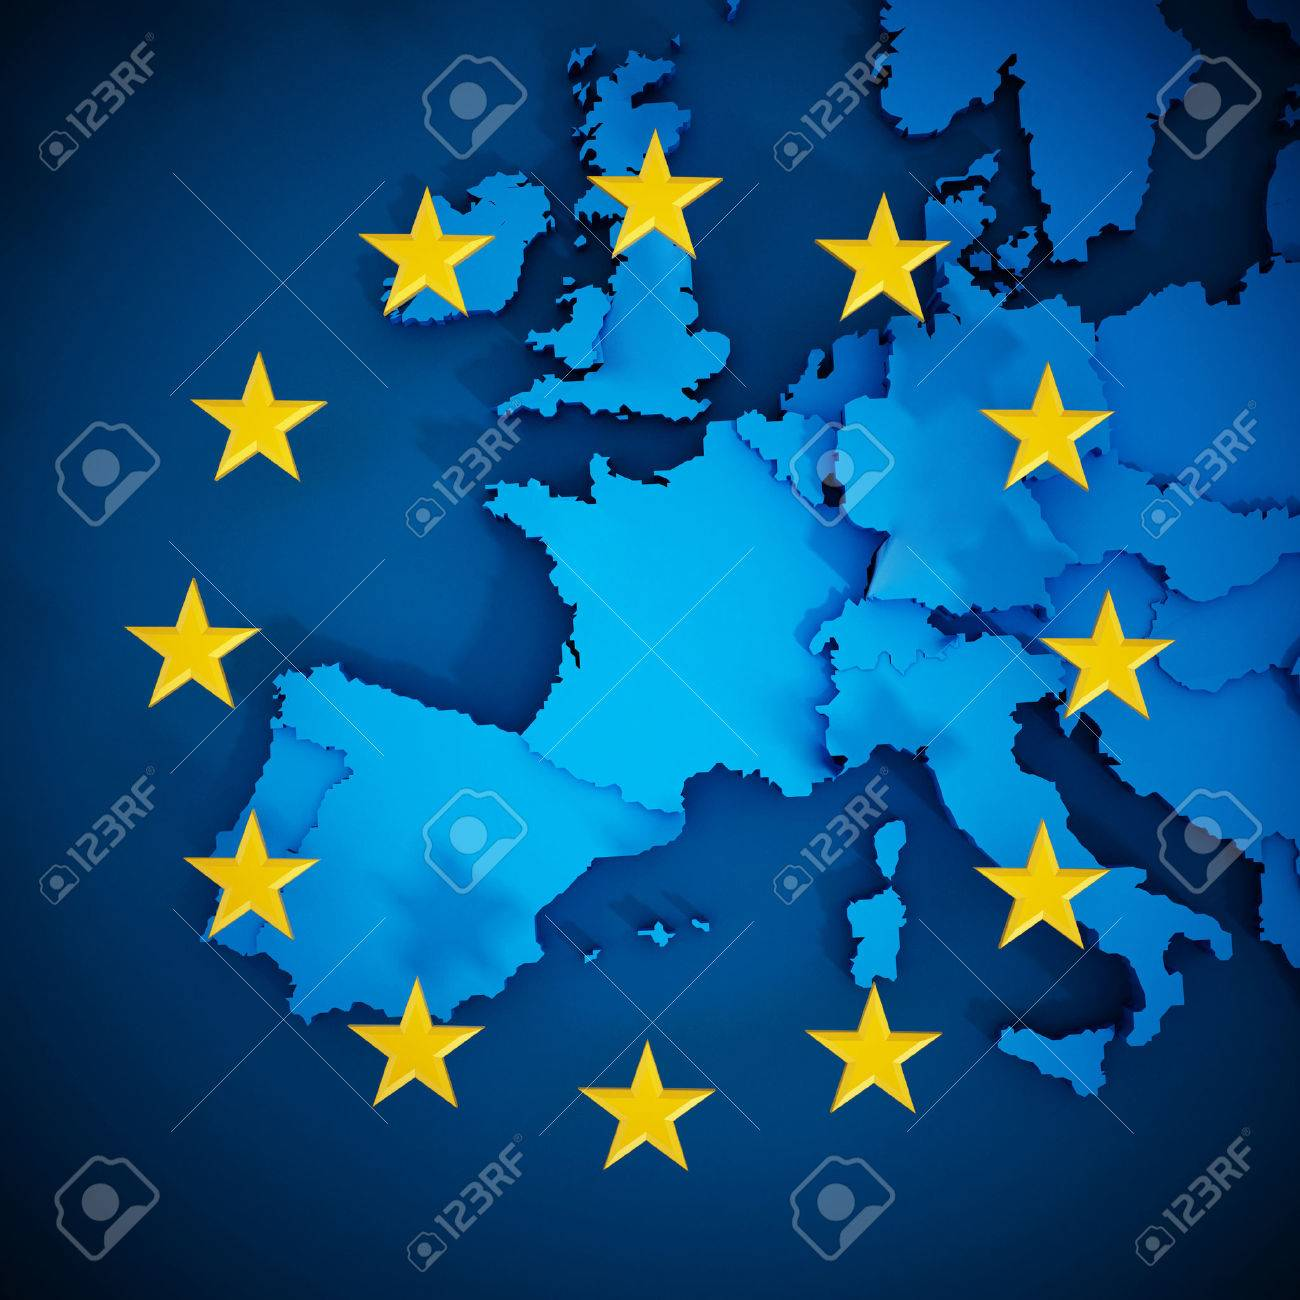 European Union map and aligned stars in circle shape forming a flag. Stock Photo - 55635729